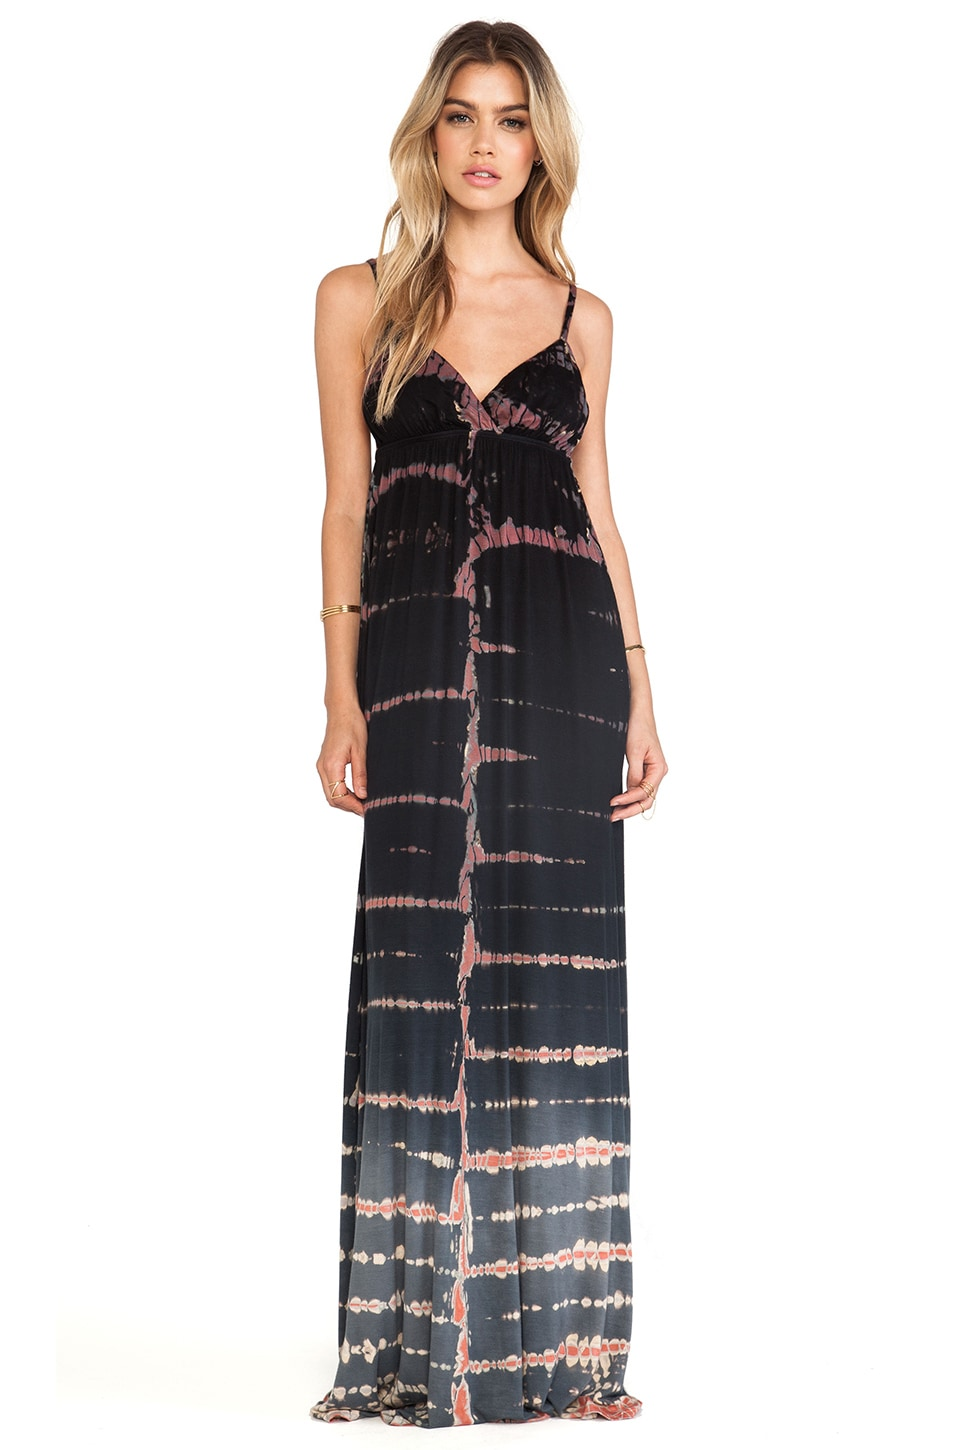 Gypsy 05 Desouk Triangle Maxi Dress in Black Ombre